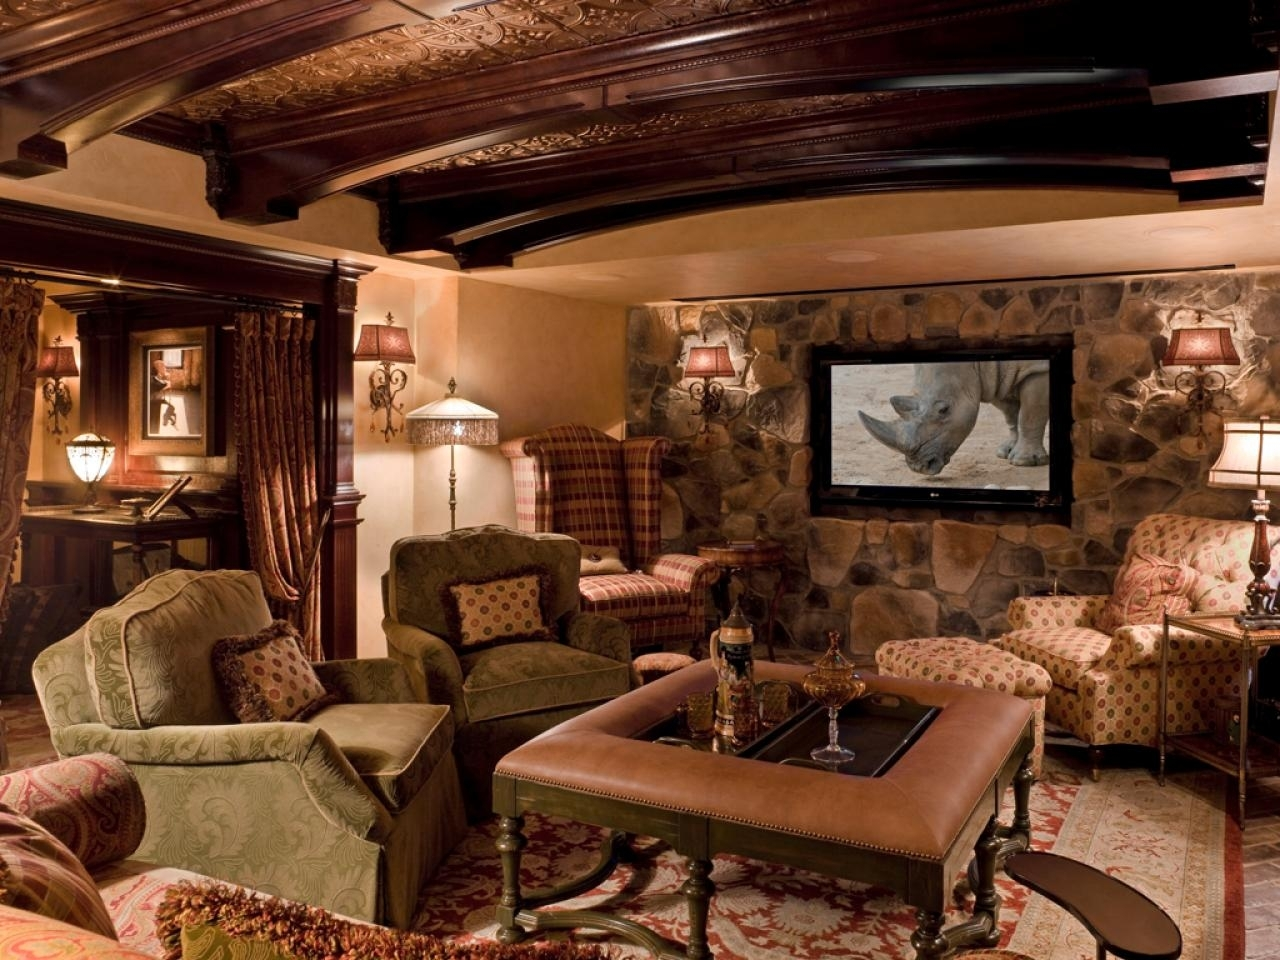 Basement Home Theaters And Media Rooms: Pictures, Tips & Ideas | Hgtv Intended For Newest Wall Accents For Media Room (View 6 of 15)